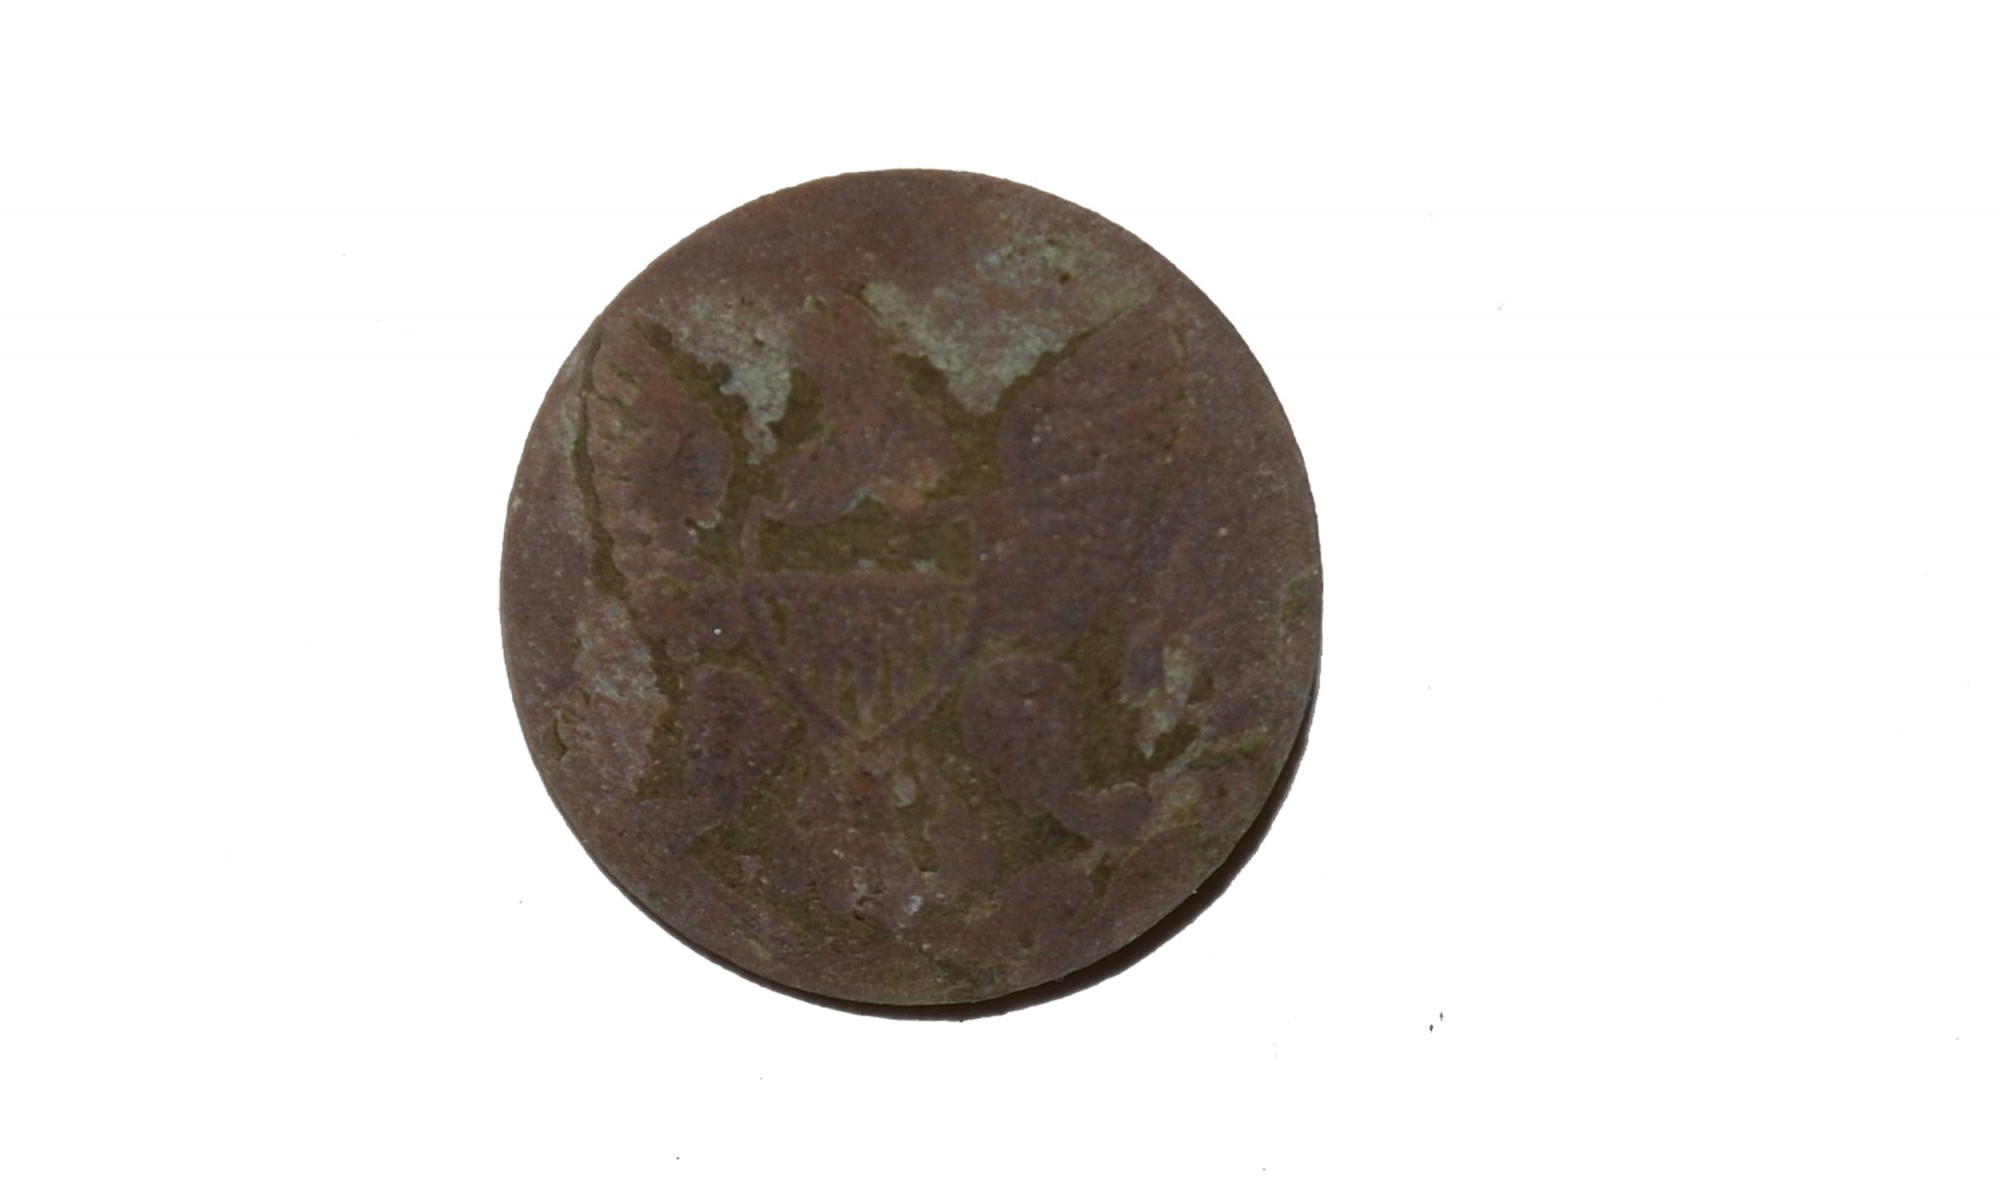 US GENERAL SERVICE EAGLE JACKET BUTTON RECOVERED AT THE TROSTLE FARM, GETTYSBURG